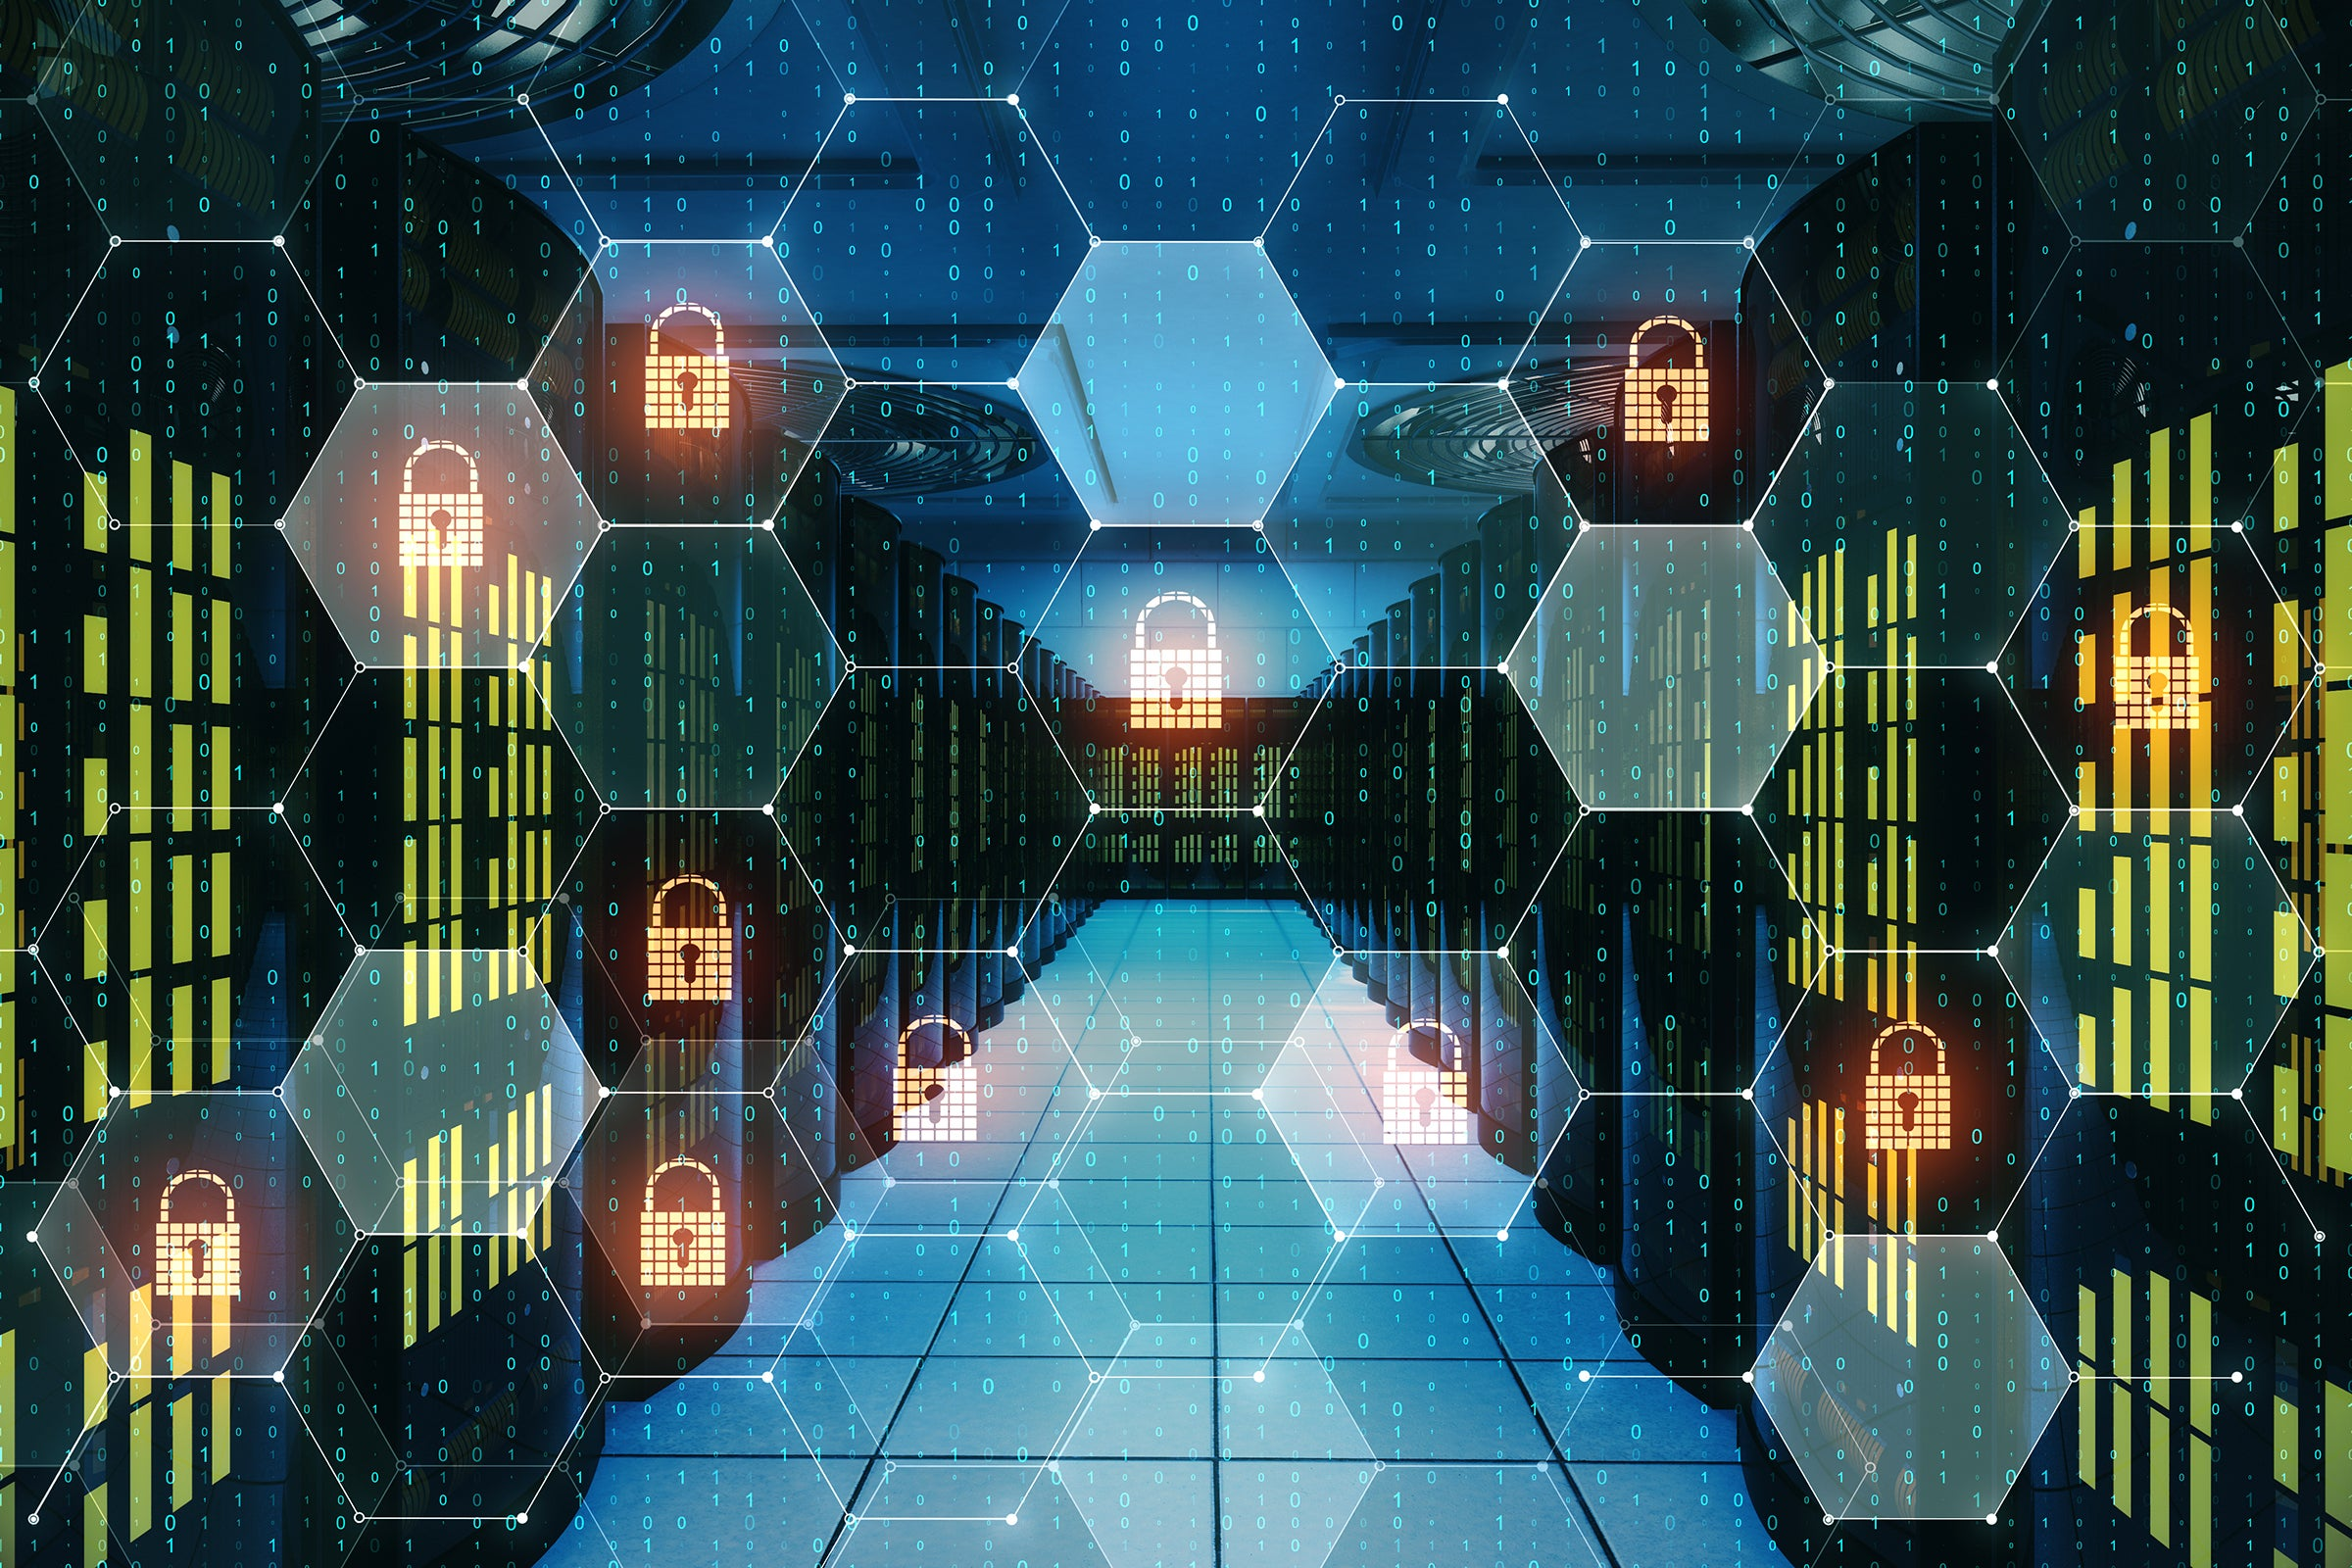 A conceptual security grid of locks overlays a network / datacenter / server room.